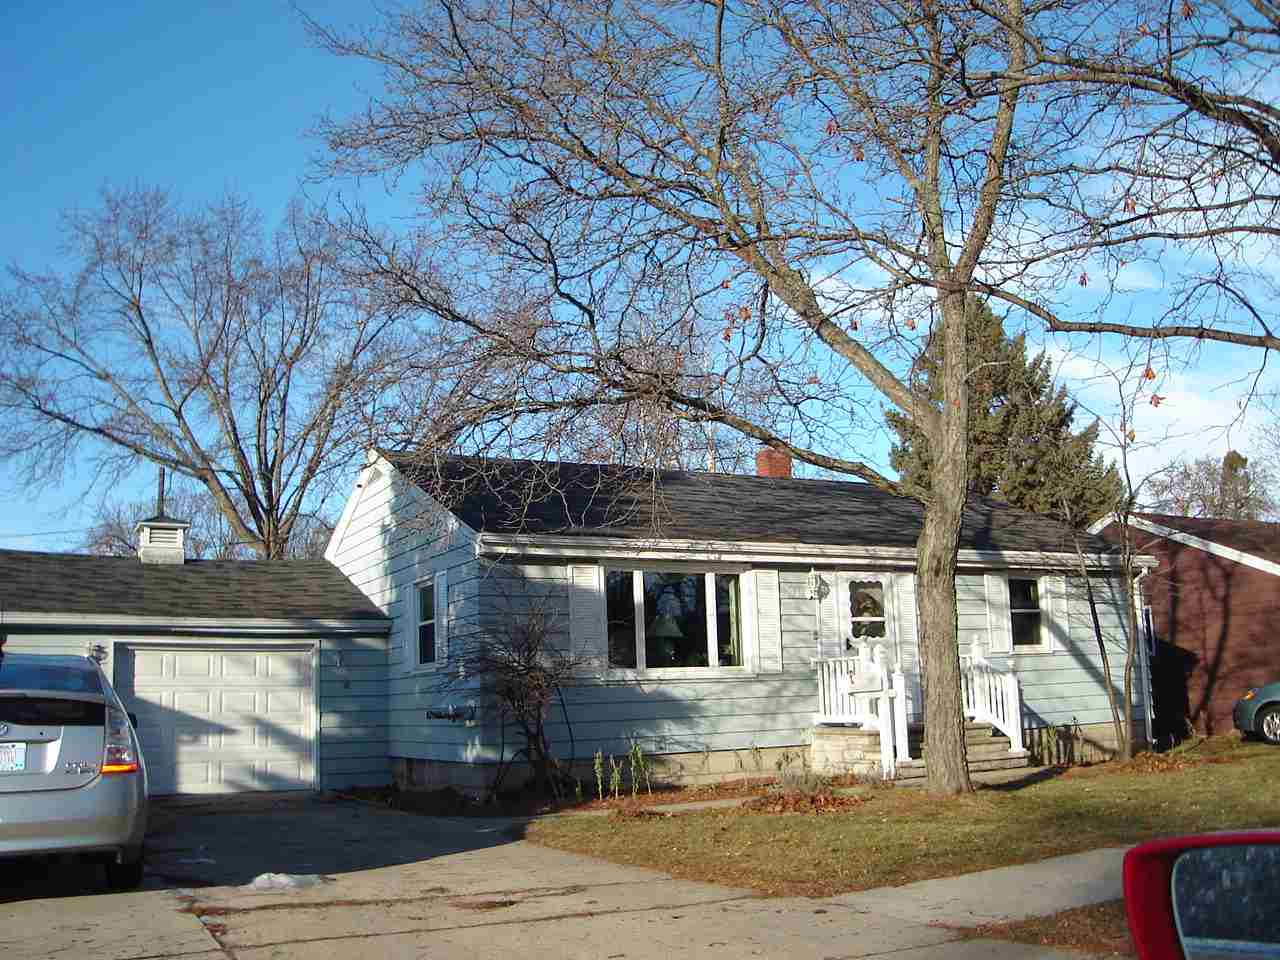 513 FRED Street,GREEN BAY,Wisconsin 54302,2 Bedrooms Bedrooms,2 BathroomsBathrooms,Residential,FRED,50195919